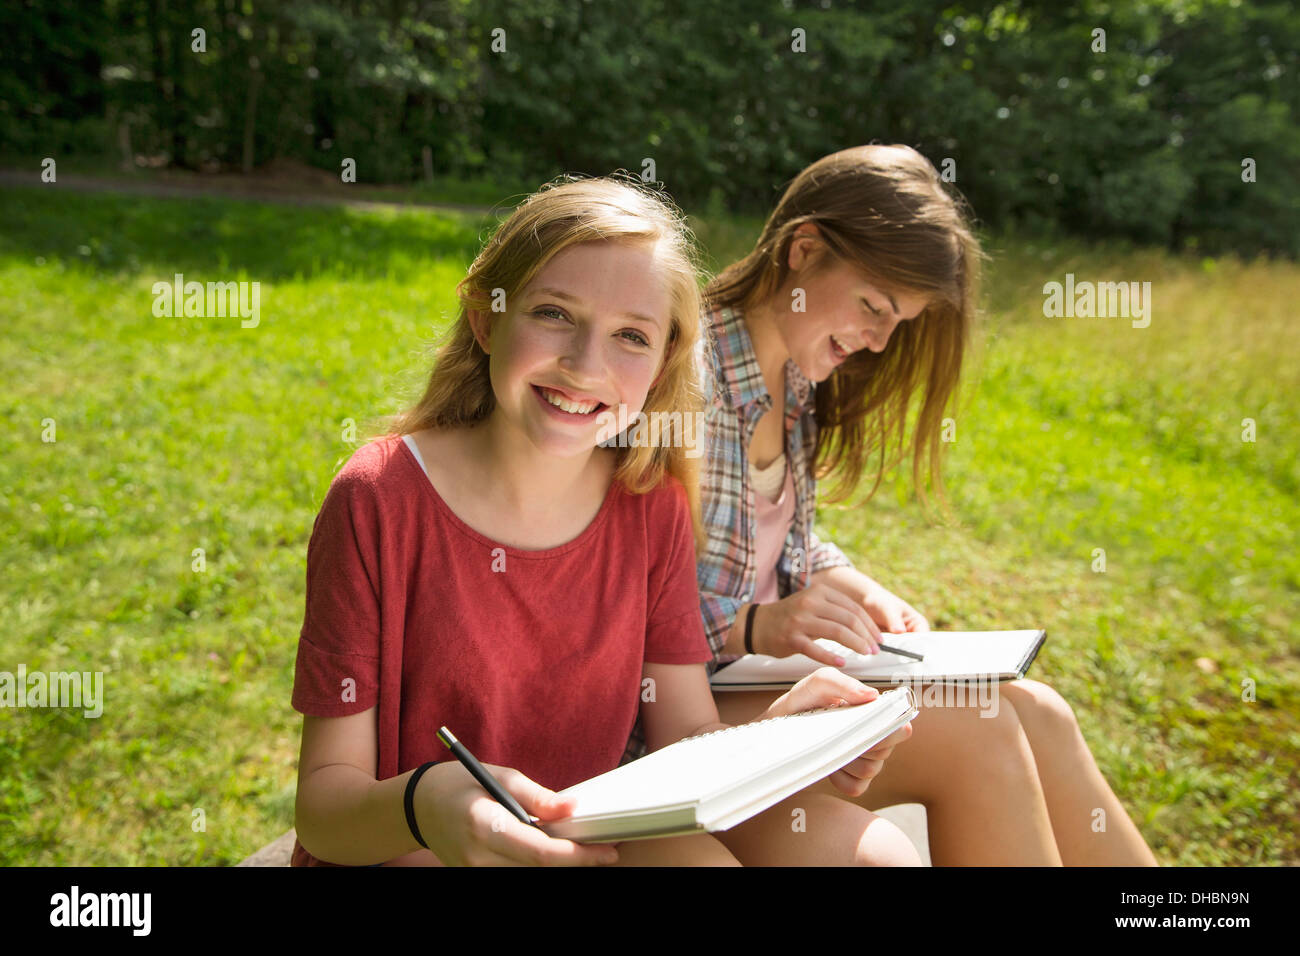 Two young girls sitting outside on the grass, with sketch pads and pencils. - Stock Image